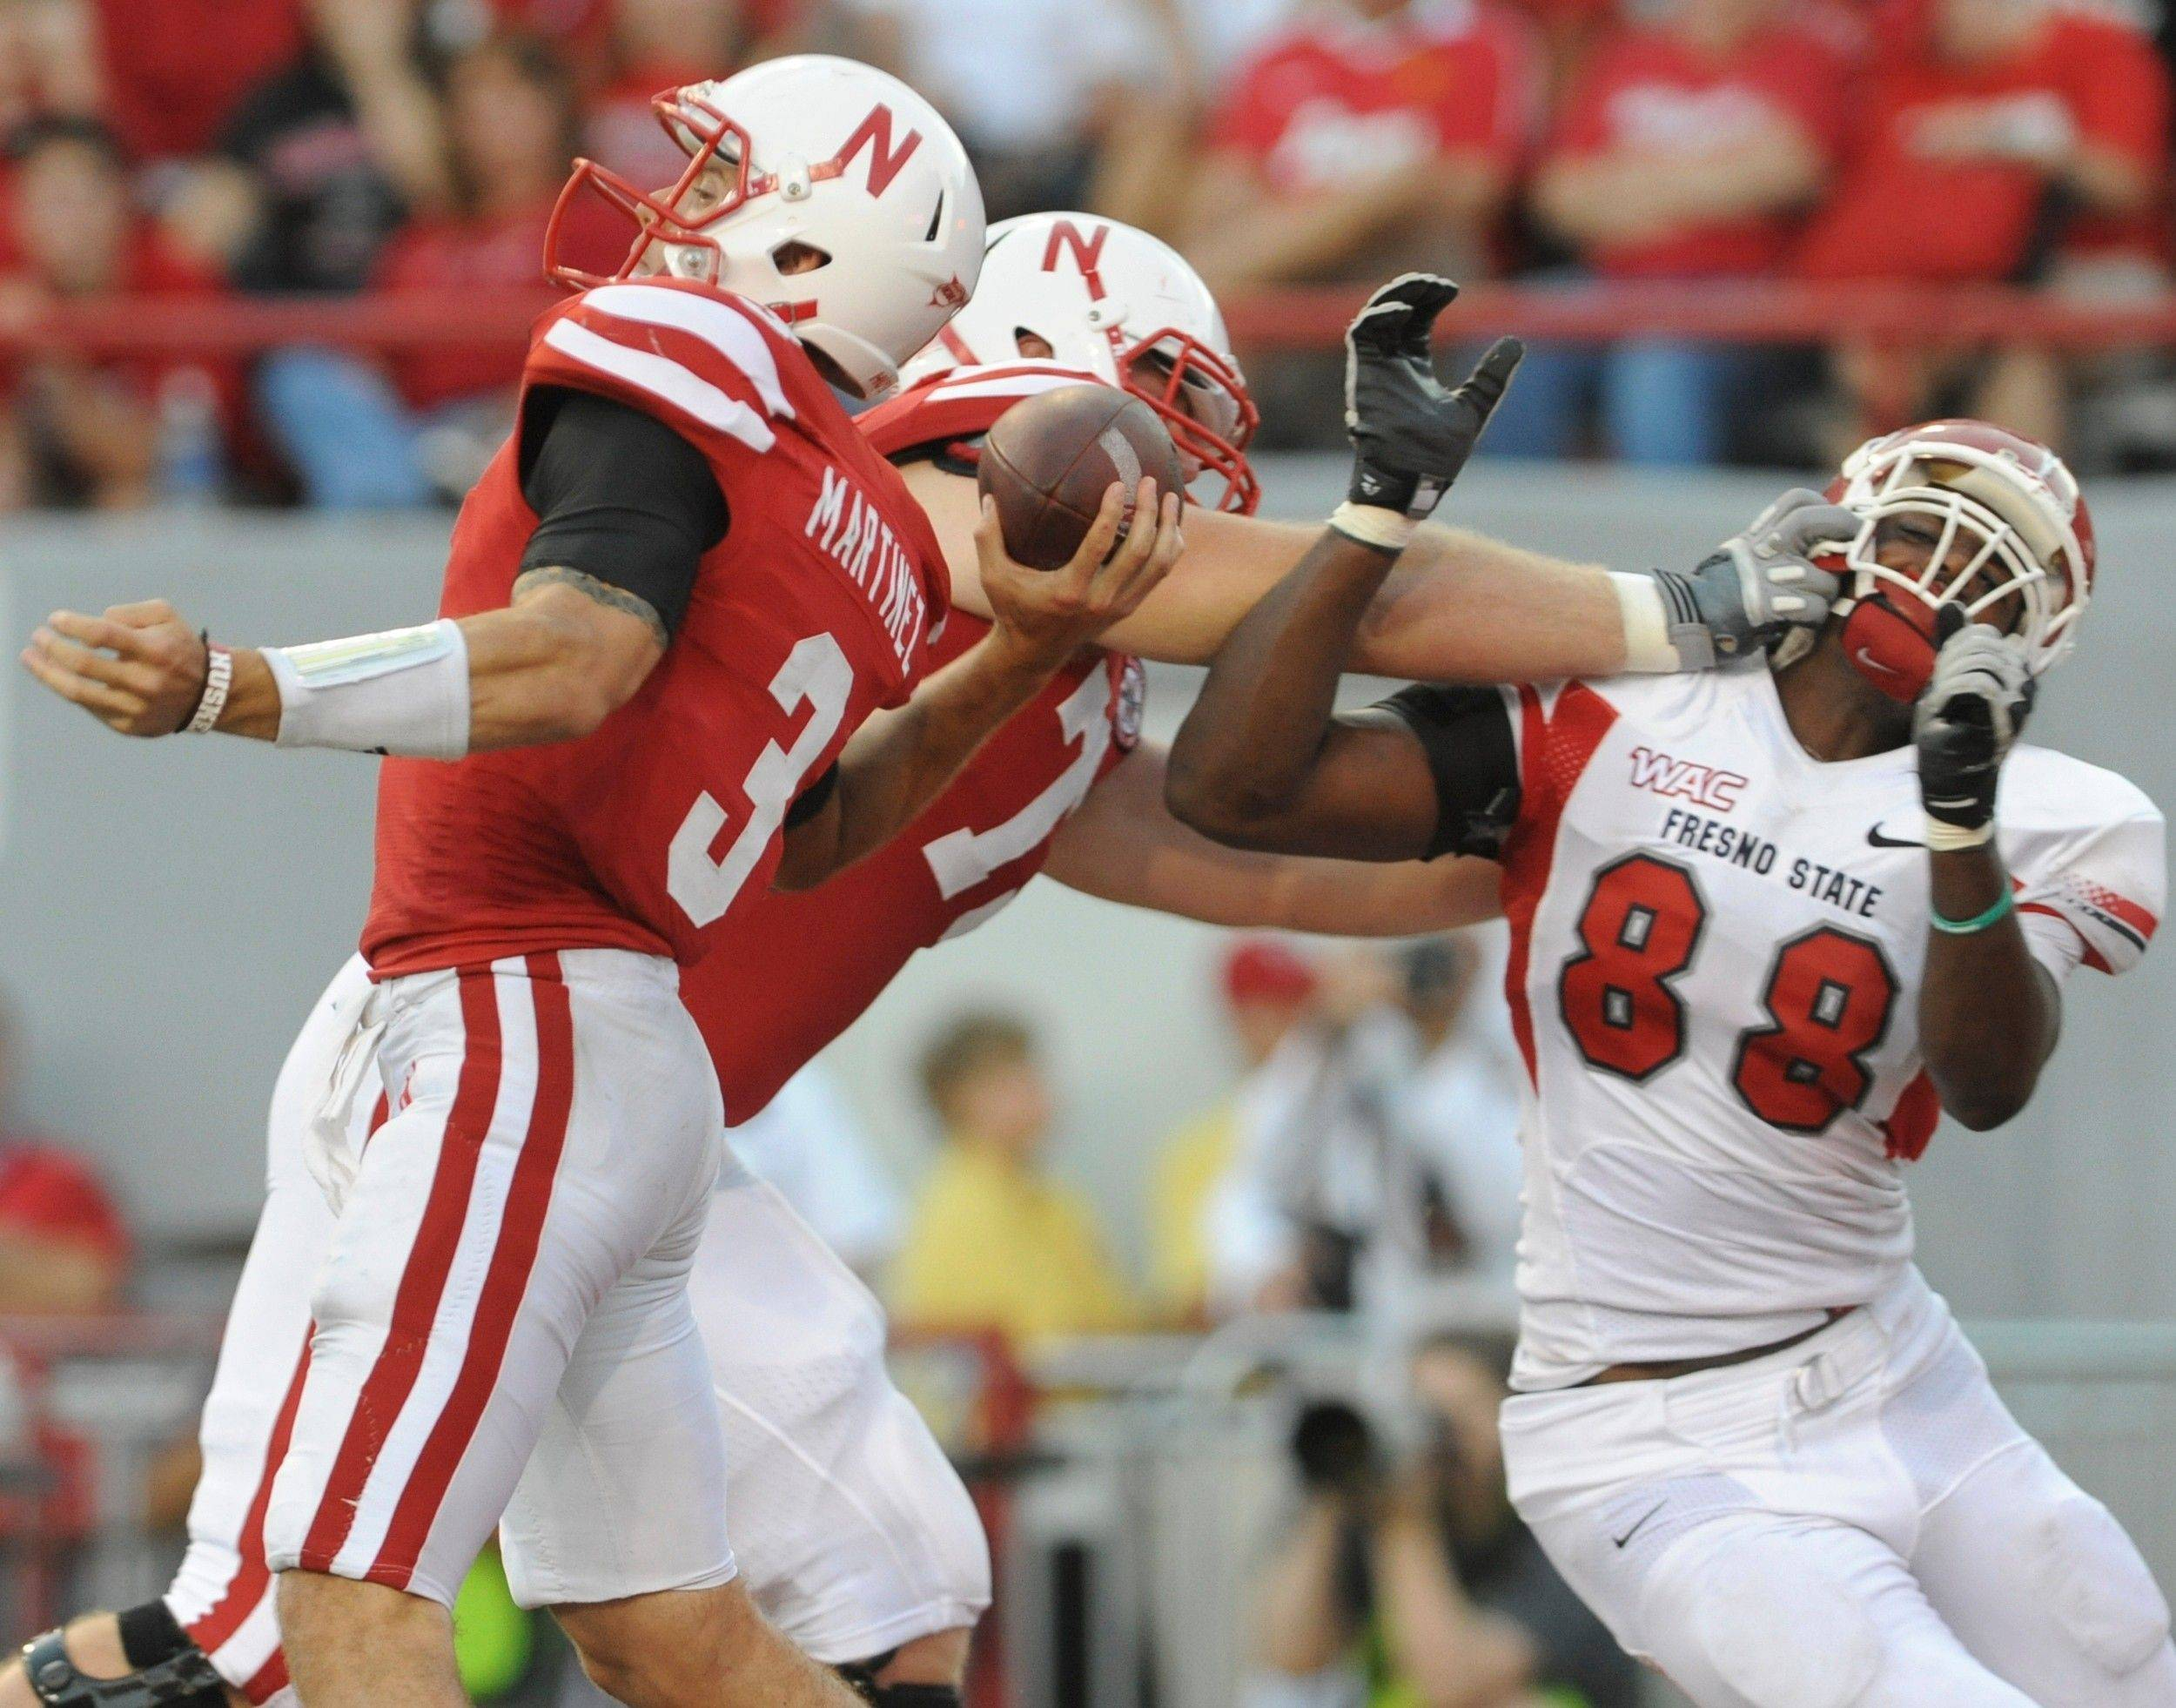 Nebraska�s Tyler Moore, center, protects quarterback Taylor Martinez (3) from Fresno State�s Tristan Okpalaugo (88) in the first half Saturday night.